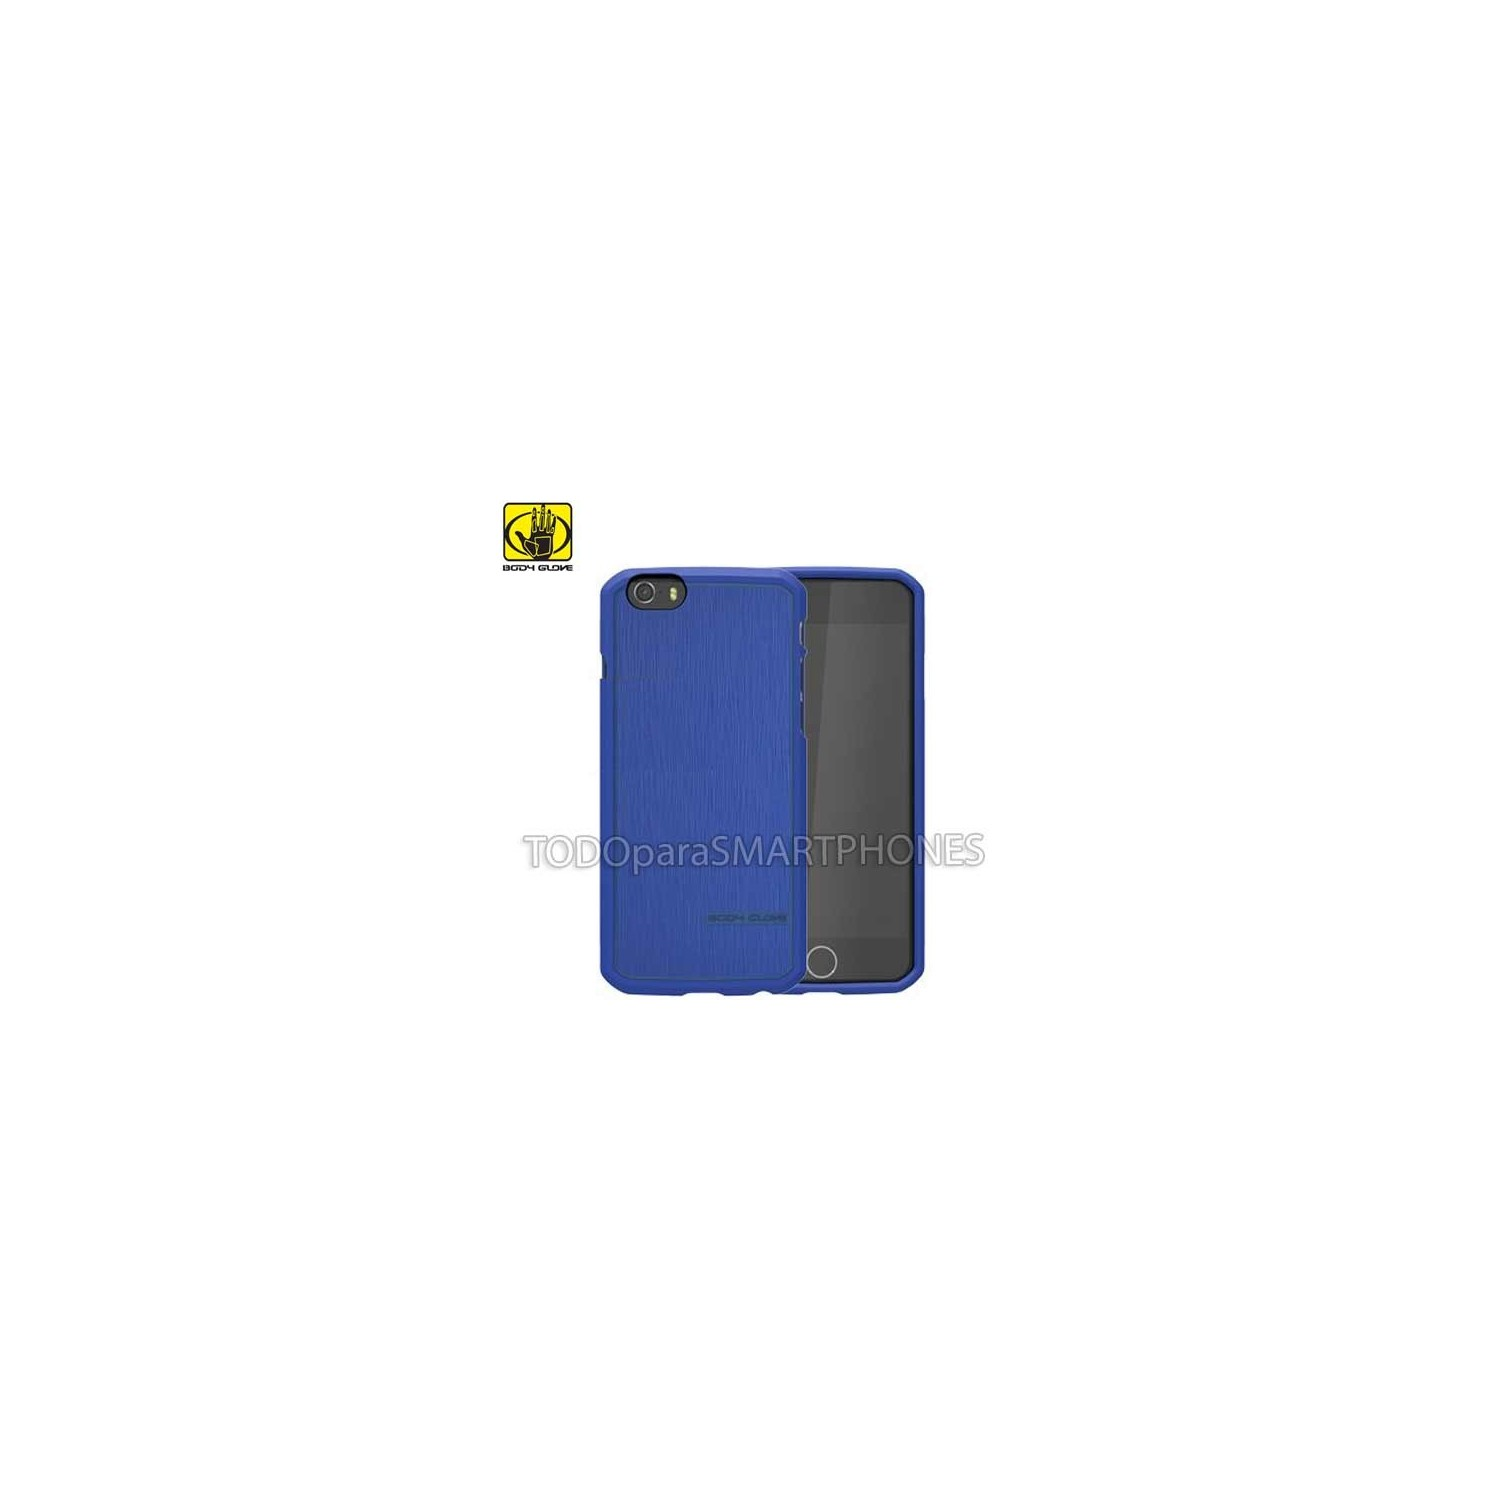 Case - Body Glove for iPhone 6 Satin Blueberry